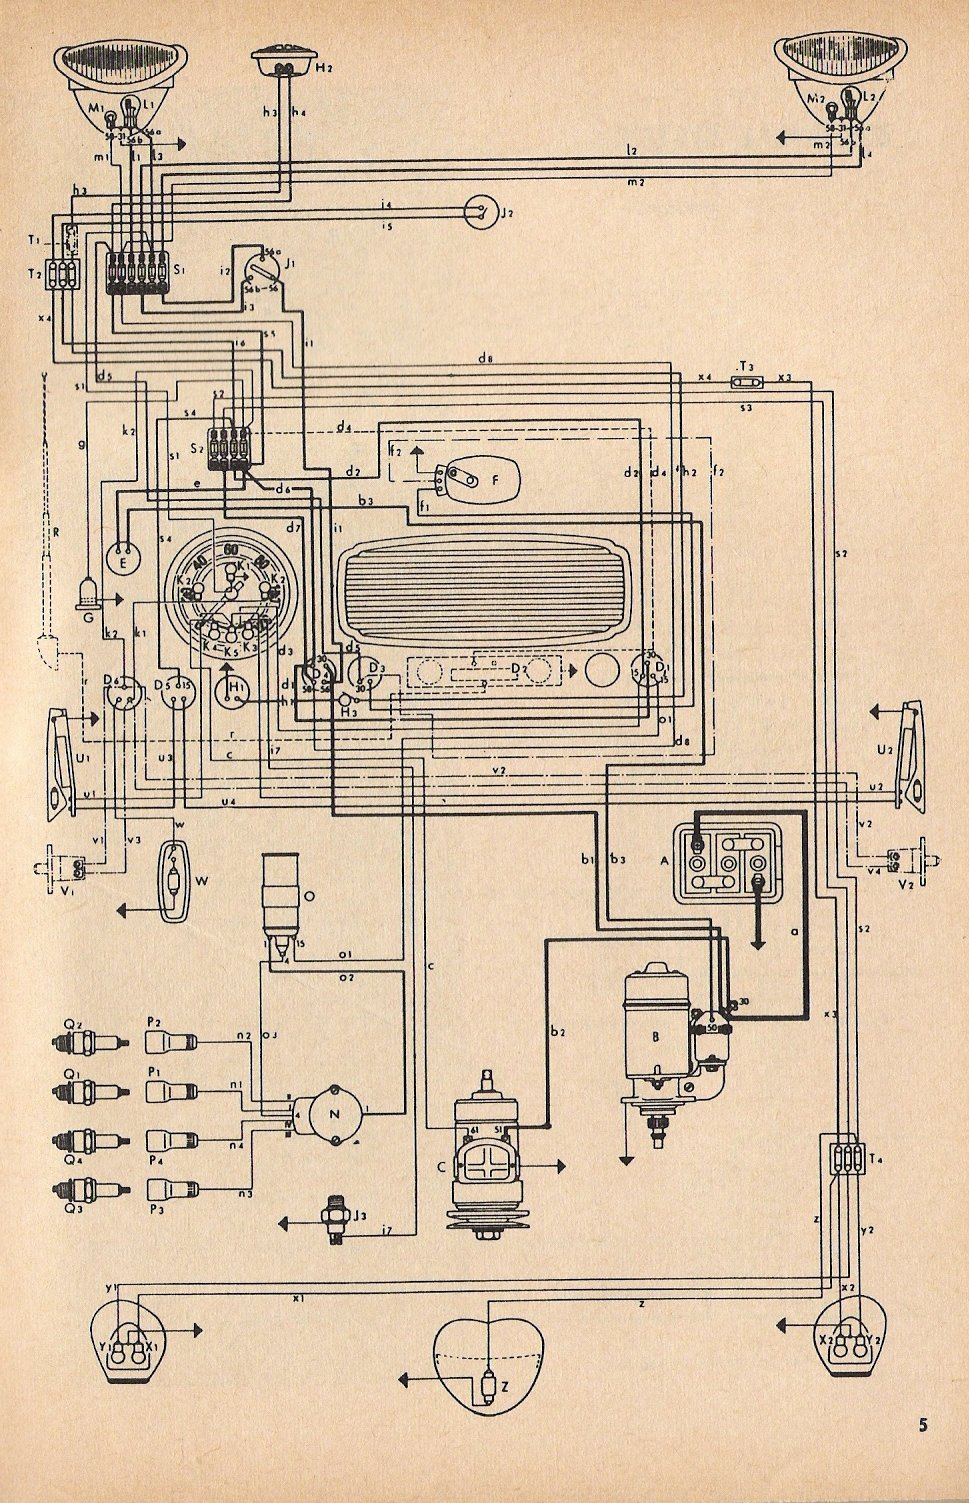 Type 1 Wiring Diagrams 1966 Charger Diagram